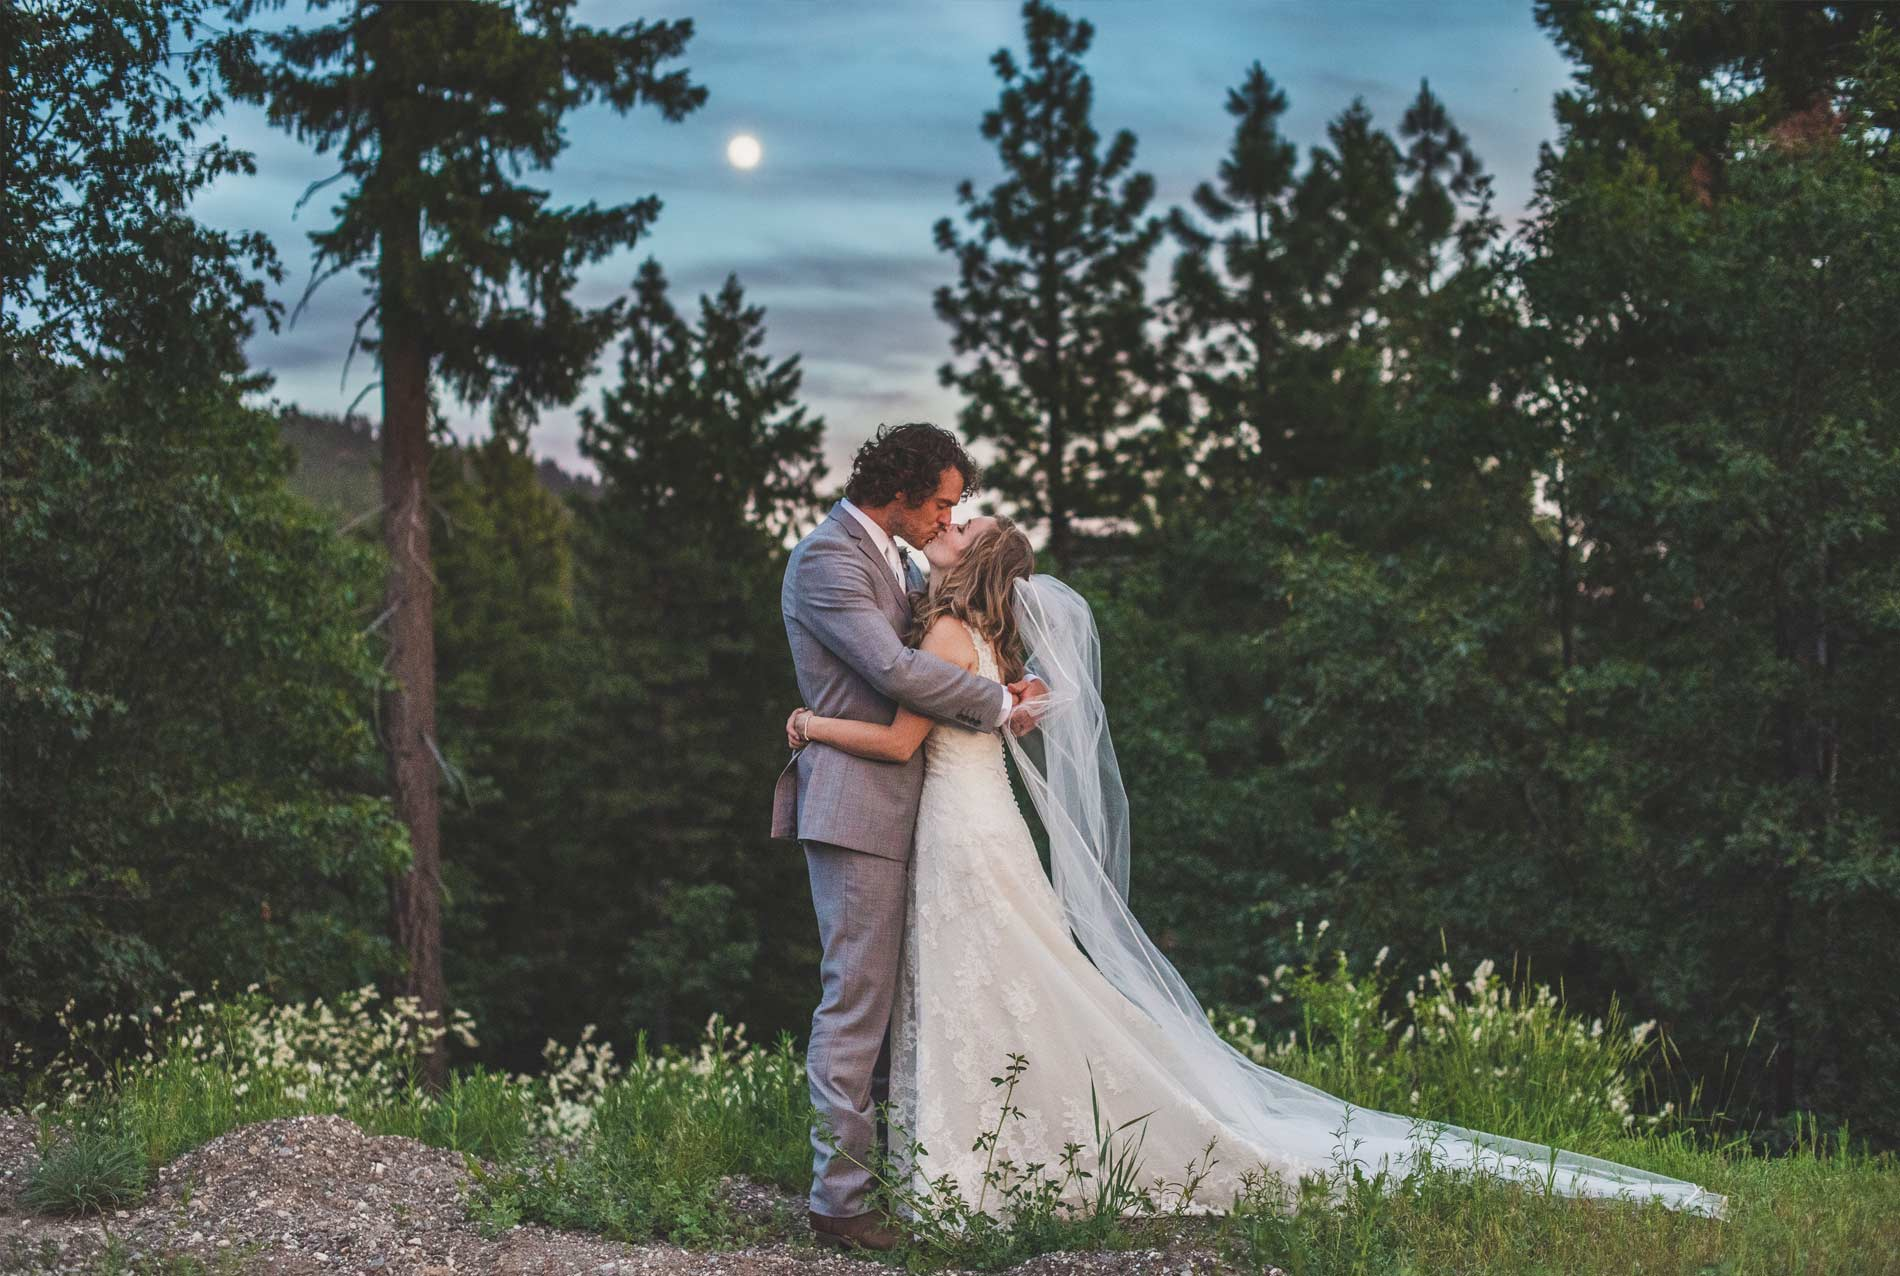 A bride & groom kissing under the dusk sky with trees around at Greenhorn Ranch